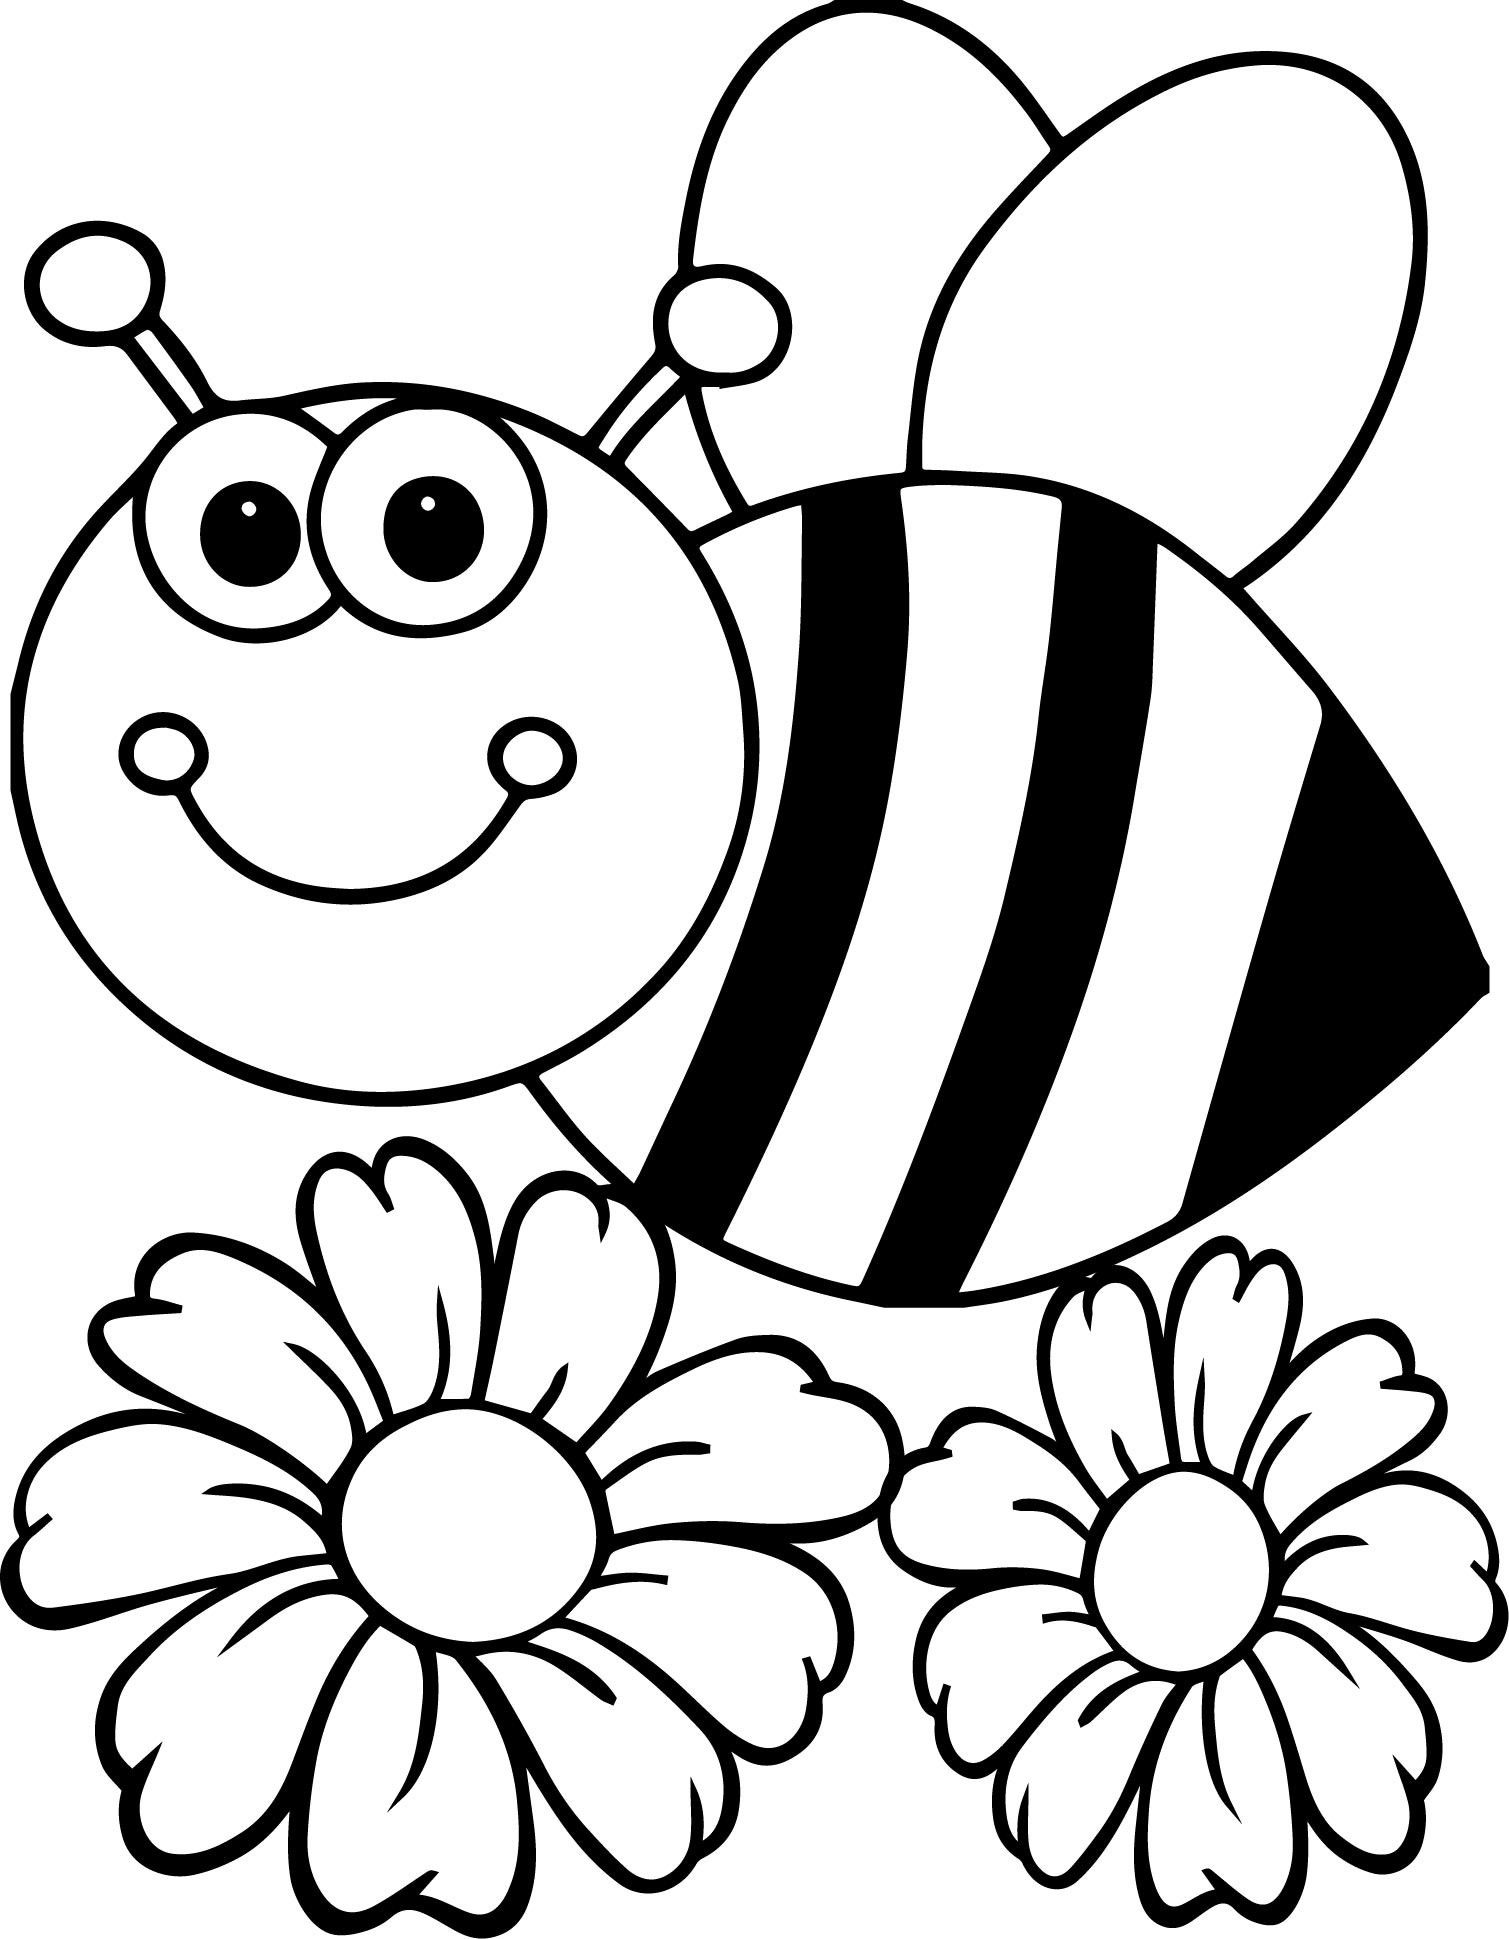 Daisy Flower Coloring Page Coloring Pages and Flower